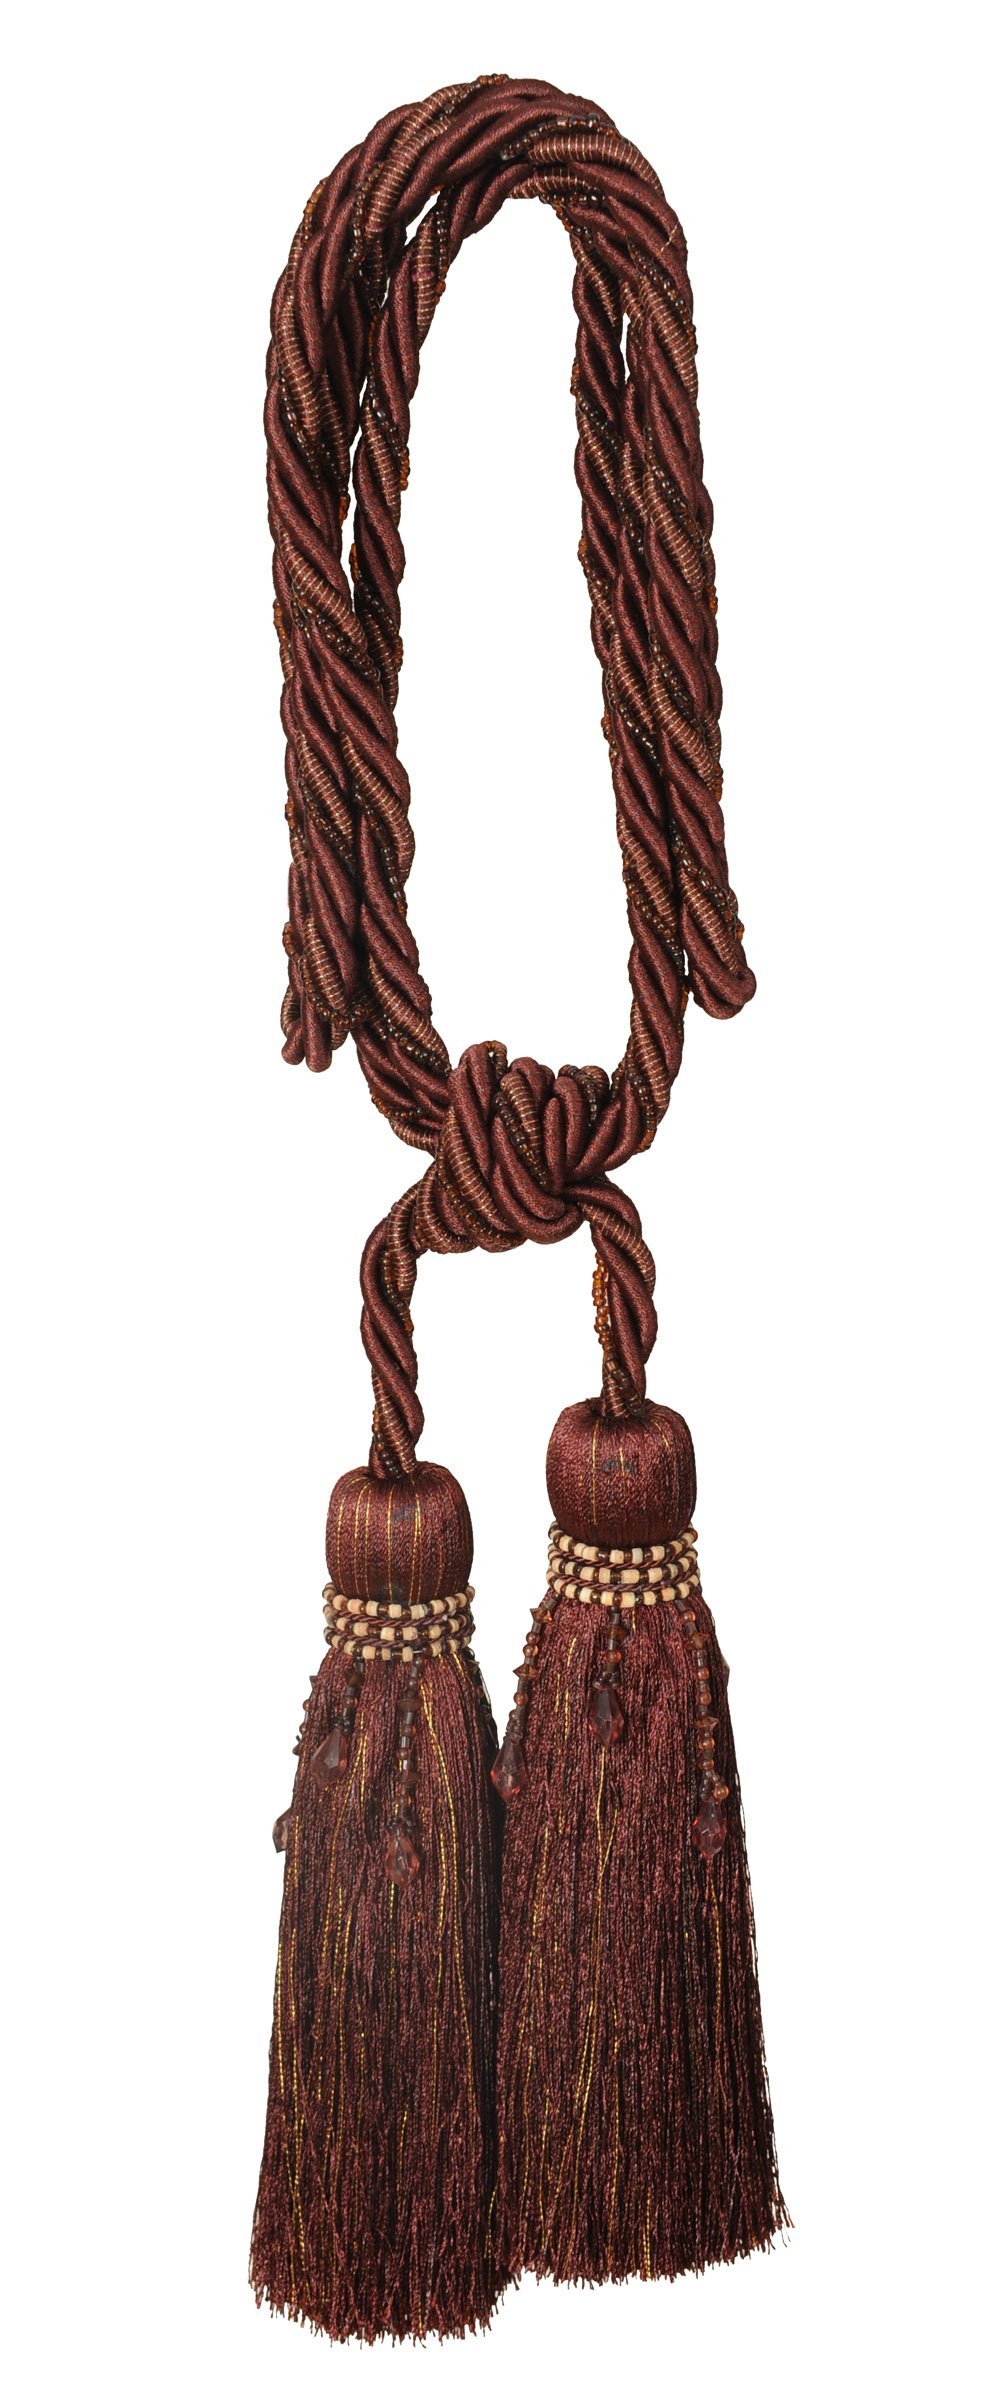 India House 76214 Milano Tieback with 8-Inch Double Tassel and 36-Inch Cord, Mahogany Mix